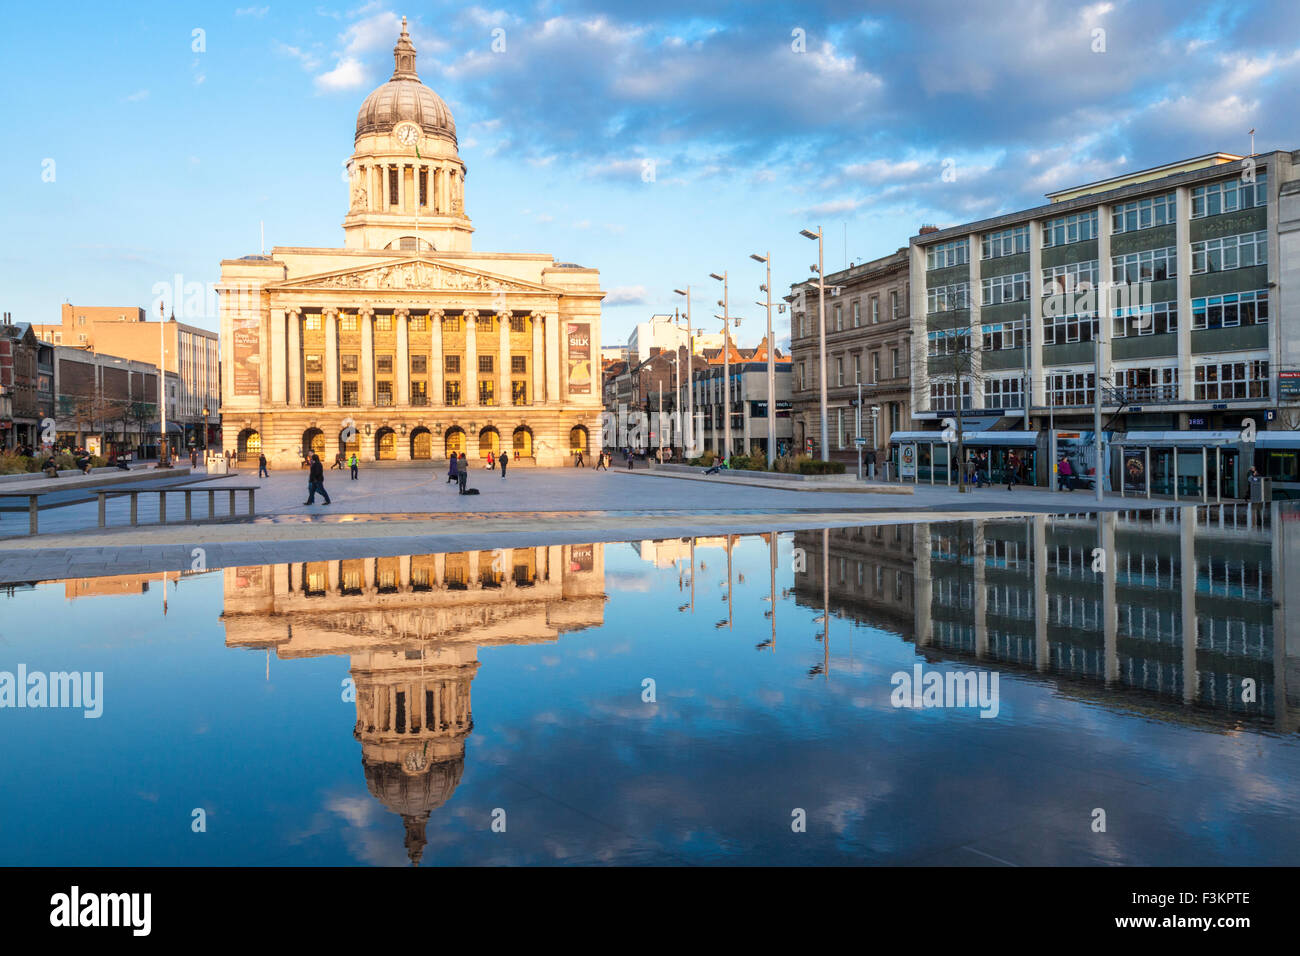 Nottingham city centre. The Council House, Nottingham City Council, lit by evening sunlight in the Old Market Square, - Stock Image